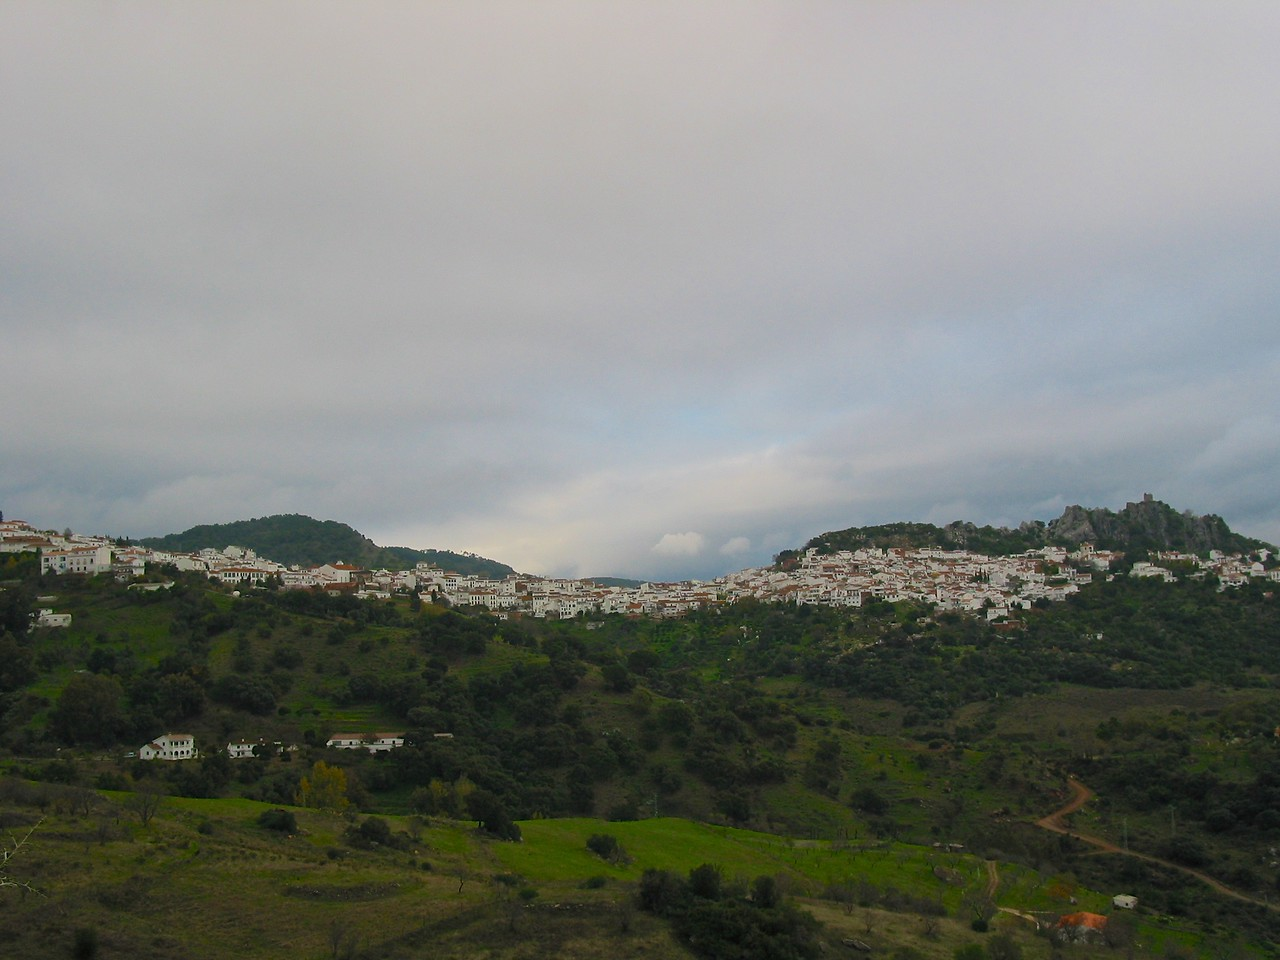 As you leave Ronda and head back towards the coast, you pass many of the white washed cities of Andalusia.